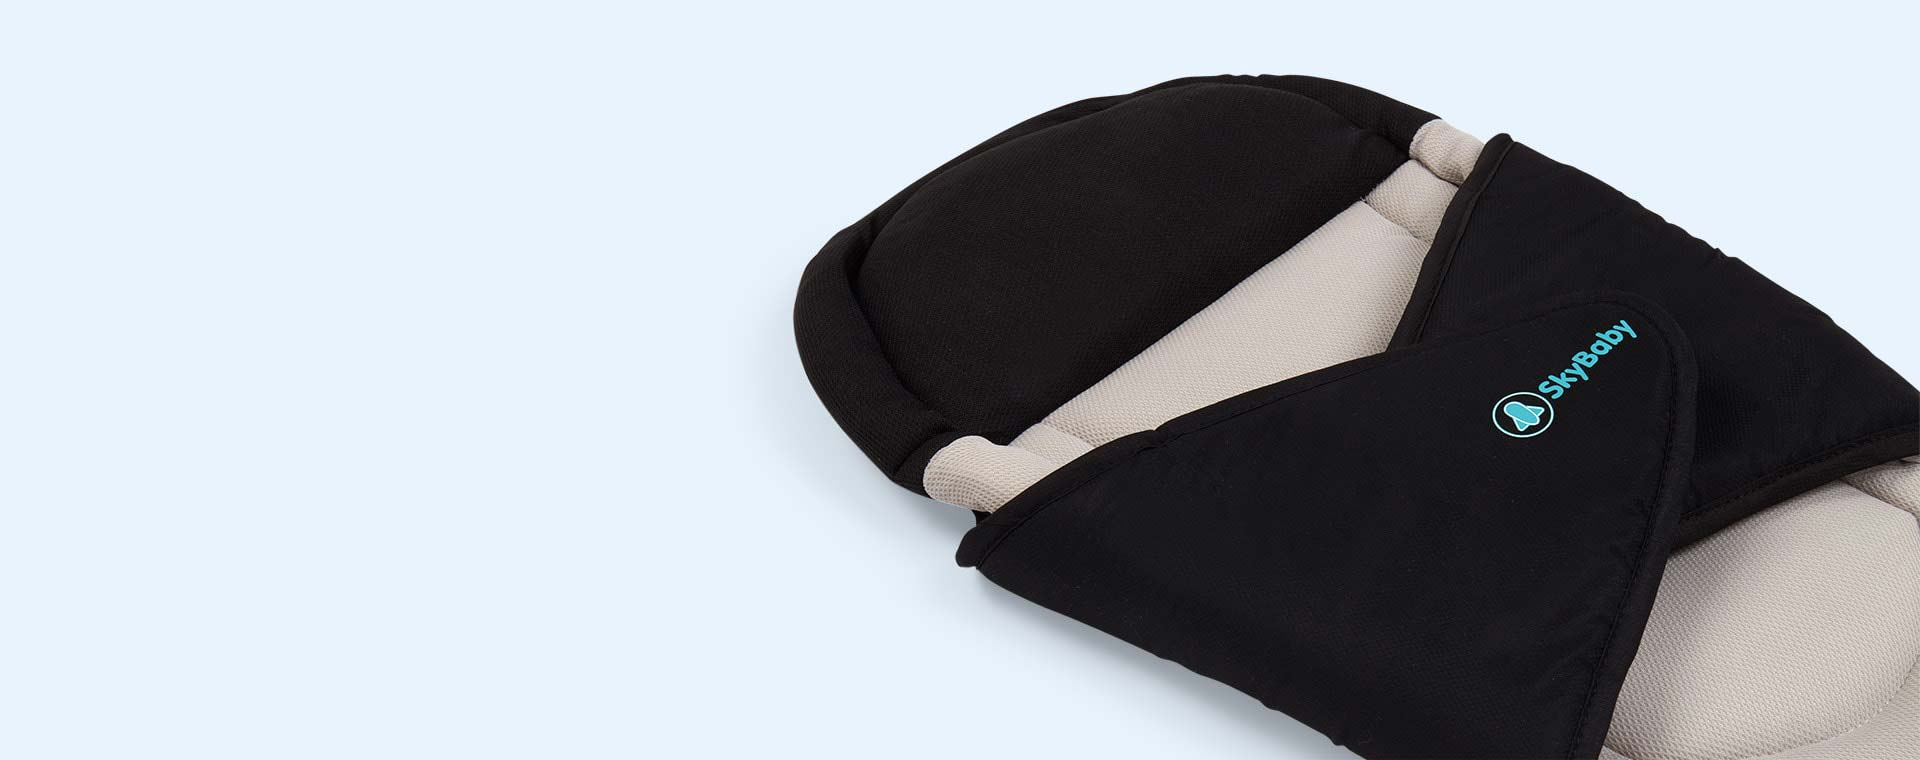 Black Sky Baby Travel Pillow